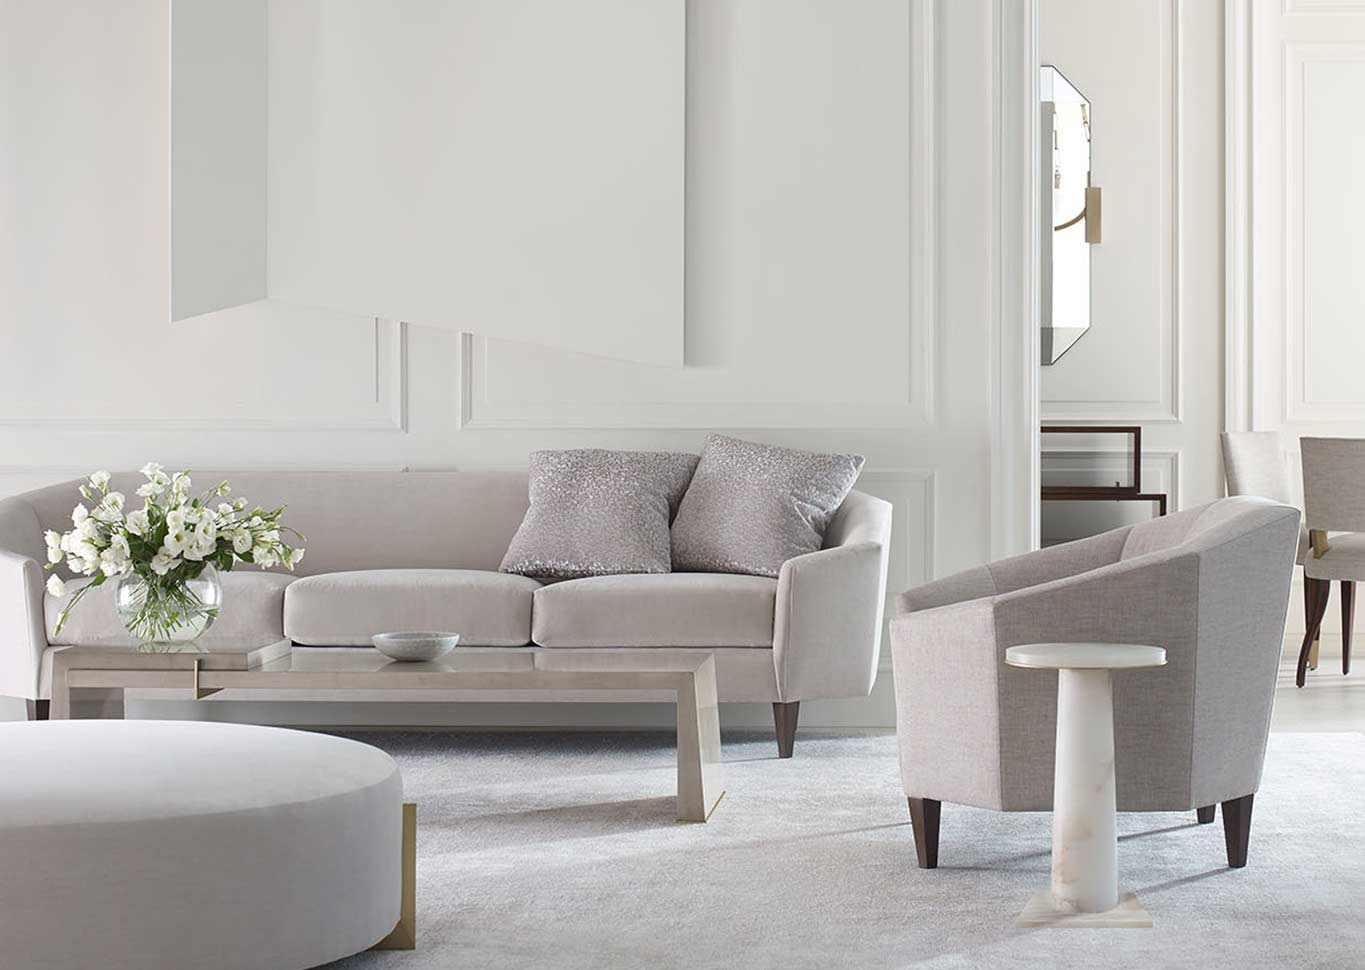 Best Sofa Brands Your Guide For Sofas Couches